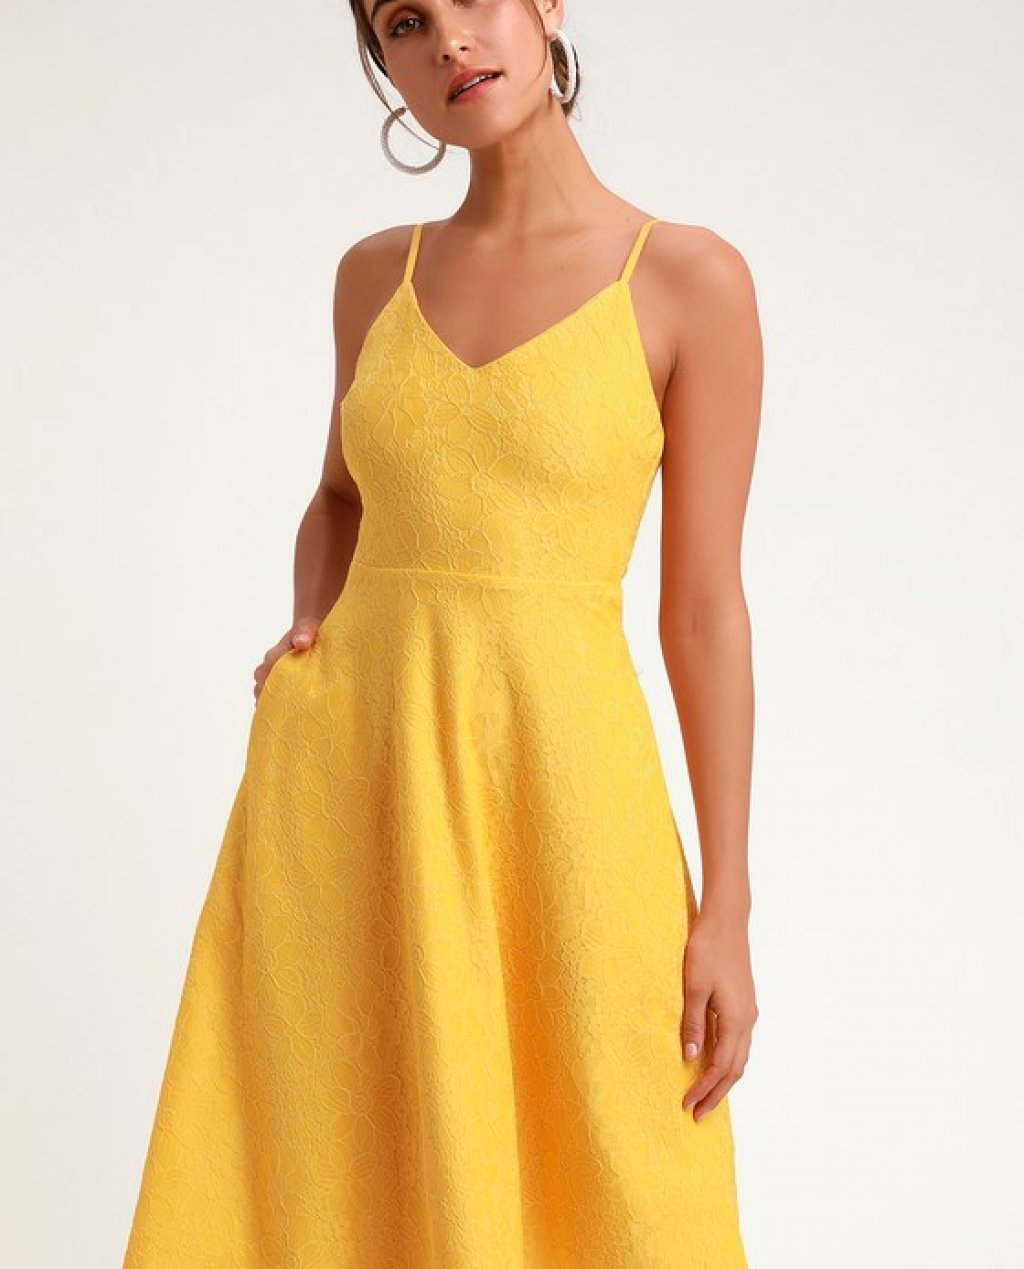 Delightful Day Yellow Lace Midi Skater Dress